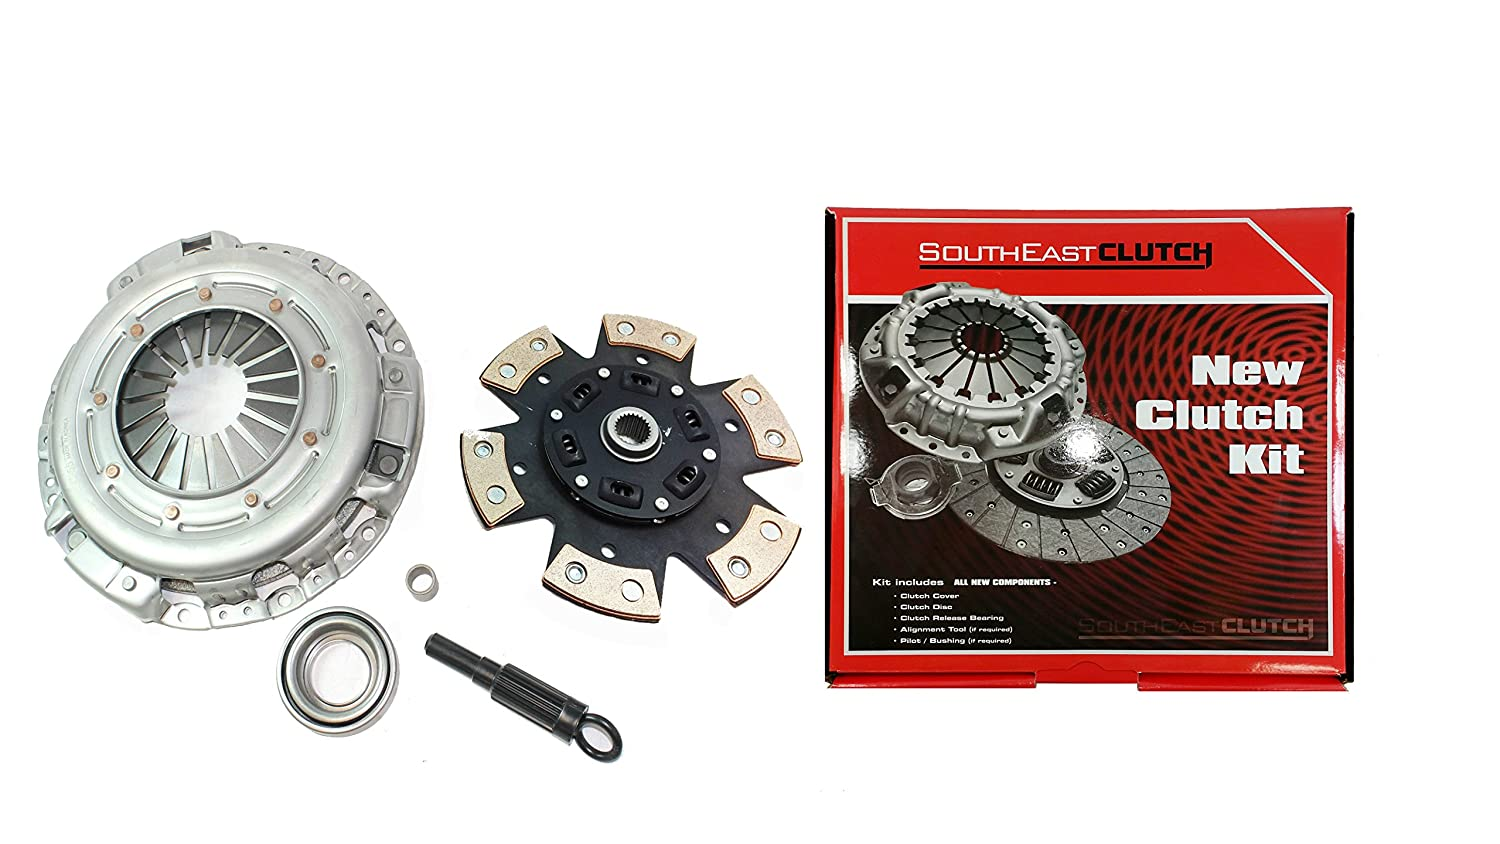 southeast-clutch etapa 3 Kit de embrague para Nissan 350Z, Infiniti G35 - G35 3.5L V6: Amazon.es: Coche y moto